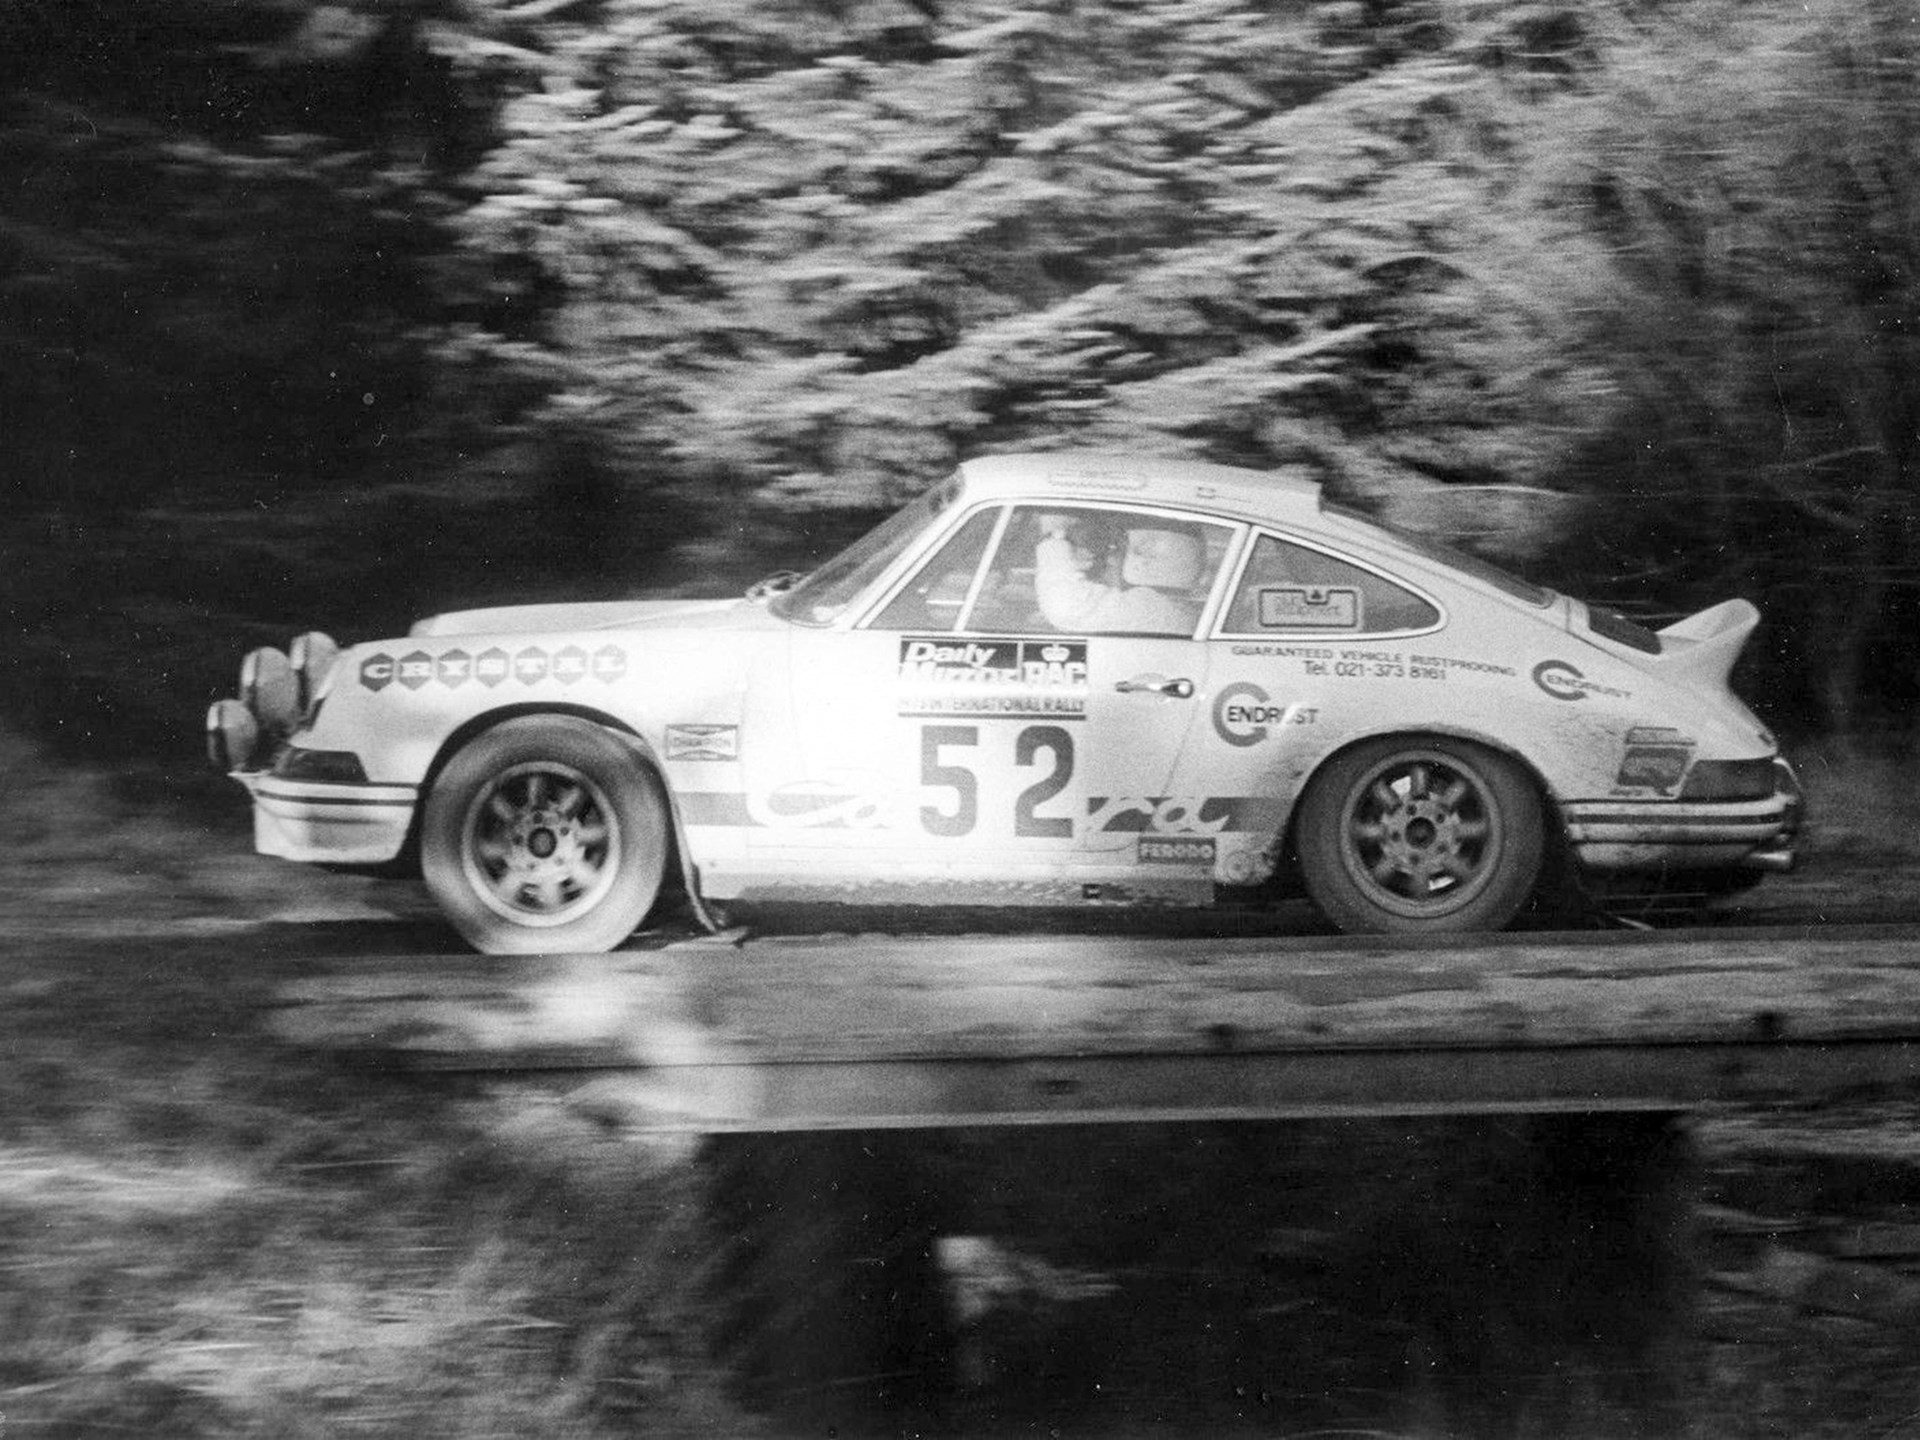 Harold Morley behind the wheel of the 2.7 RS at the 1973 RAC rally, where he finished 2nd in class.